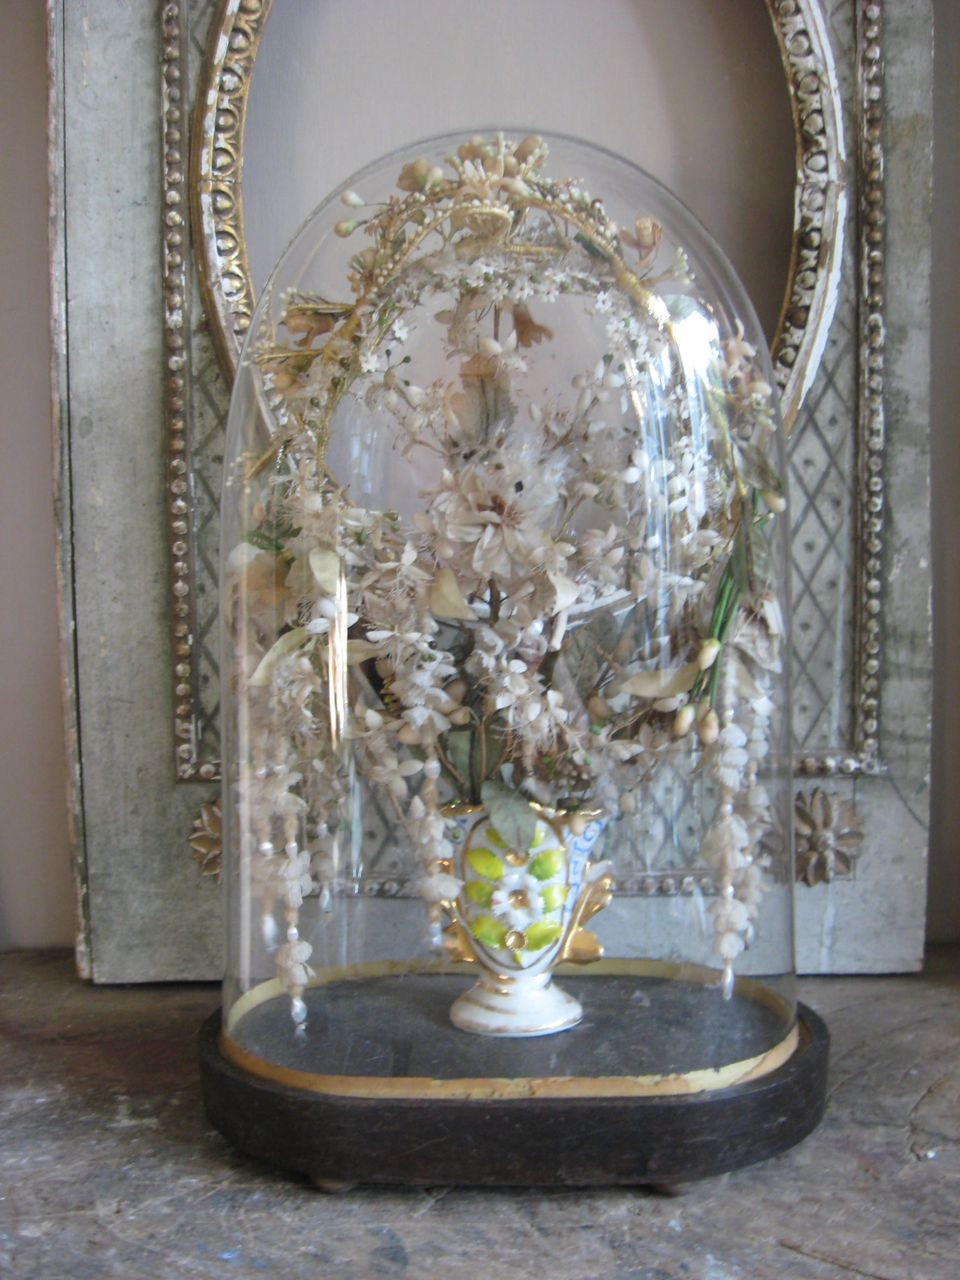 "Beautiful Ornate Glass dome with a vase ""Porcelain Vieux de Bruxelles"" with great wax- and other flowers in."